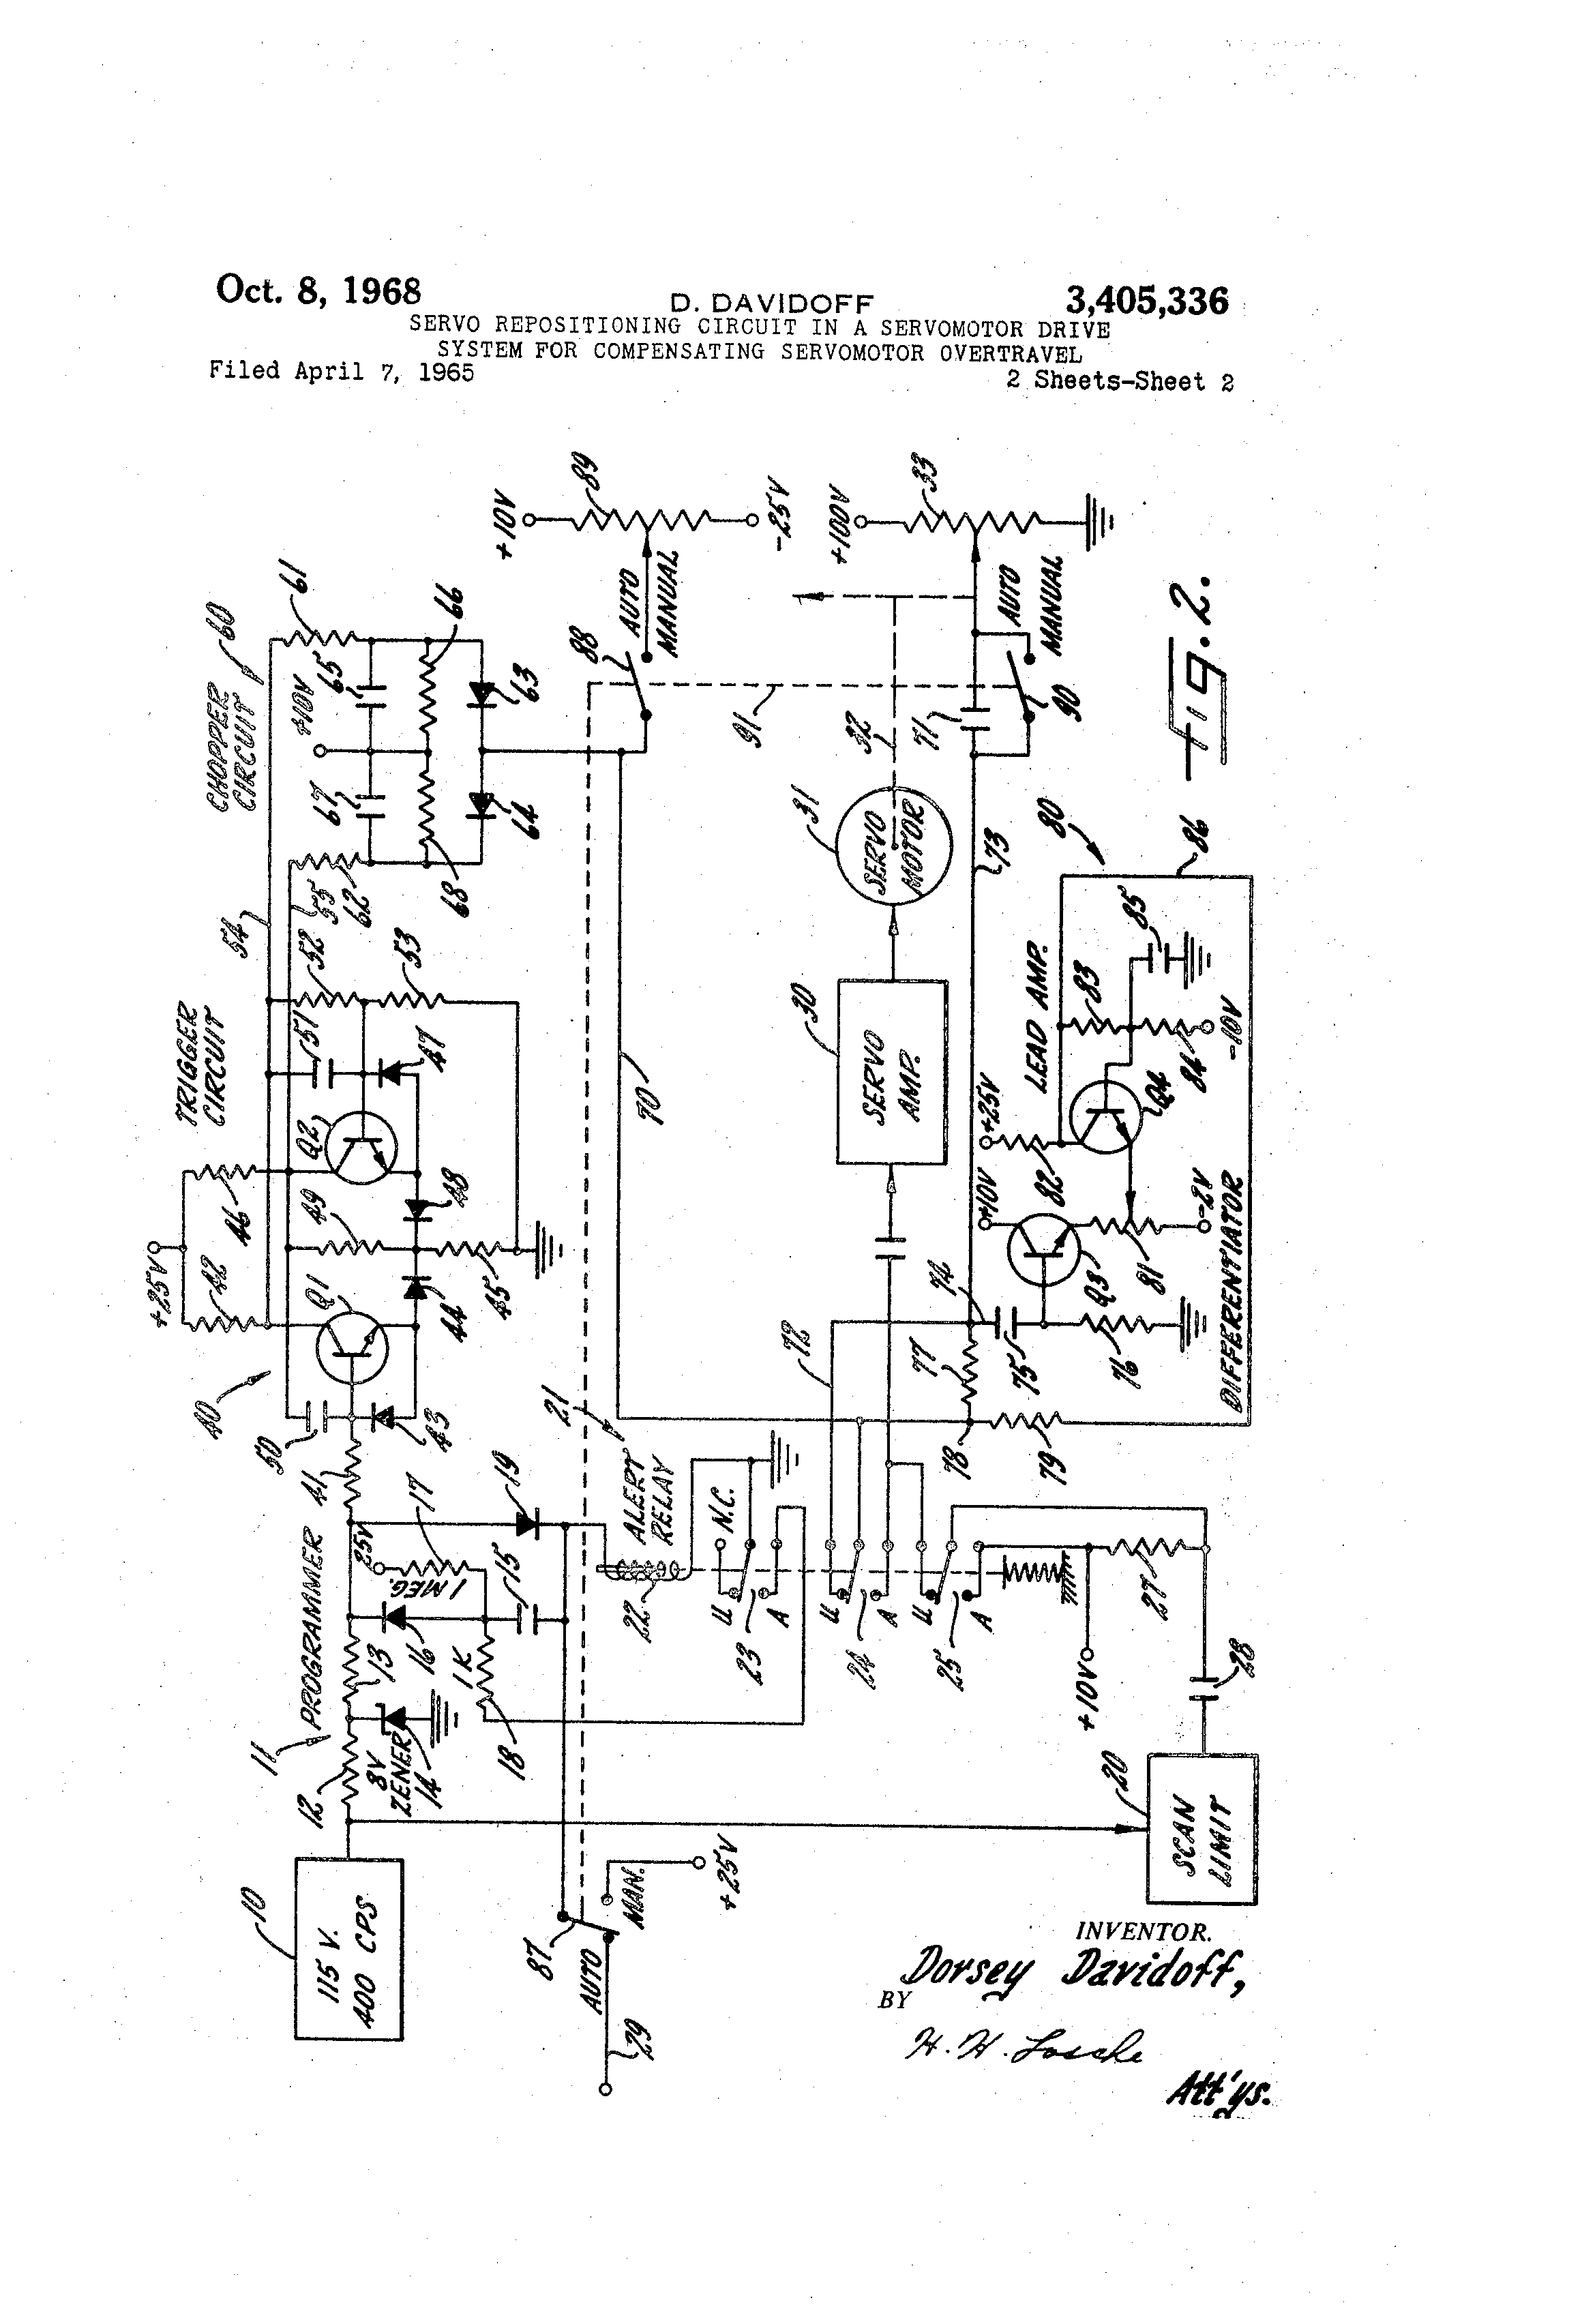 Patent Us3405336 Servo Repositioning Circuit In A Servomotor Drive Motor Diagram Drawing